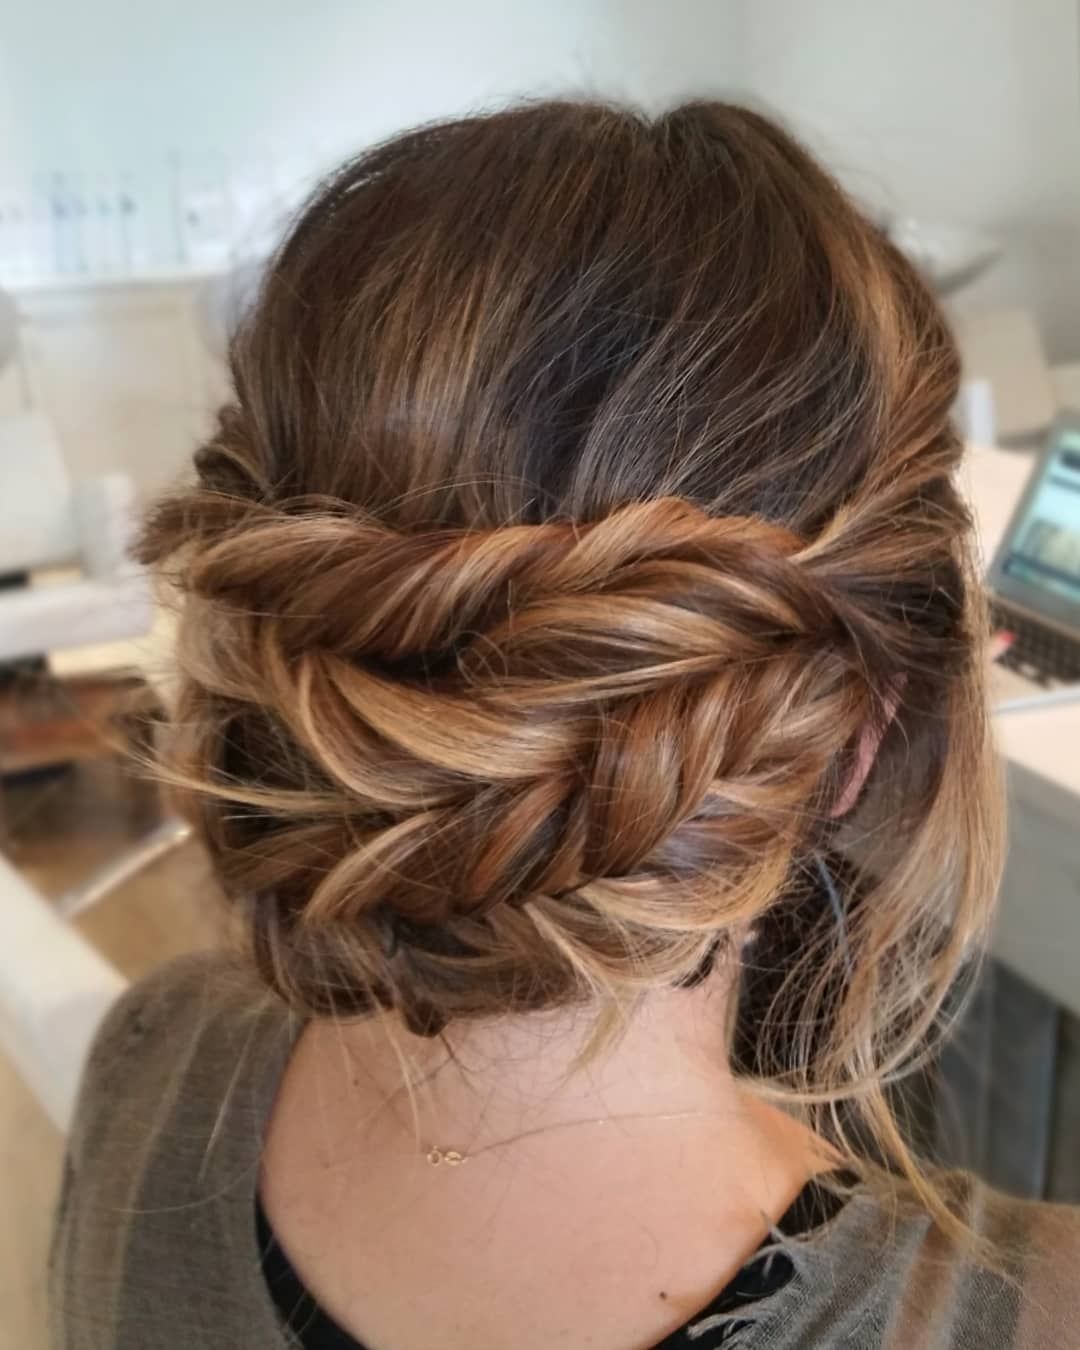 Wedding Hairstyle With Braids: Beautiful Whimsical Braided Updo